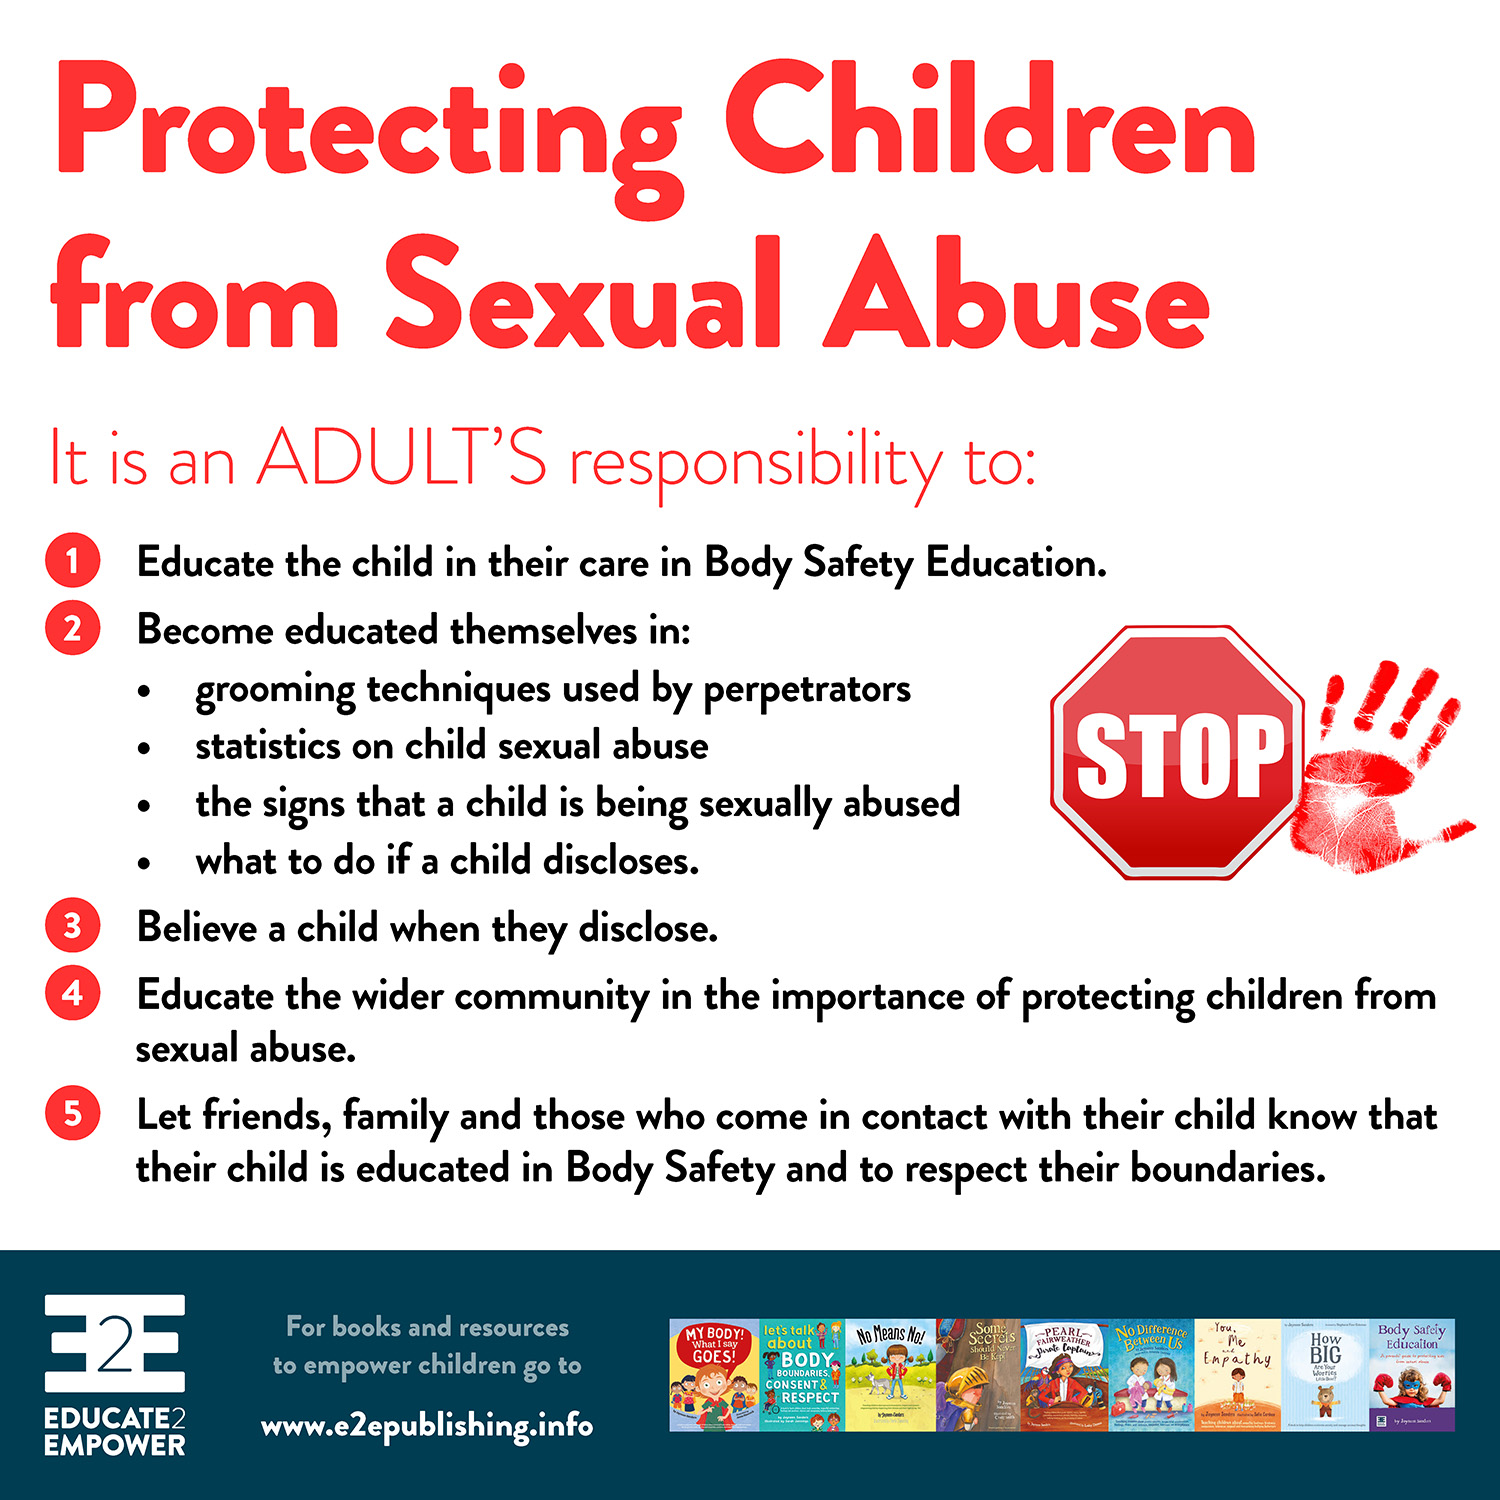 Protecting Children from Sexual Abuse - Would you like a copy?To download, right/control click on on the linkand select